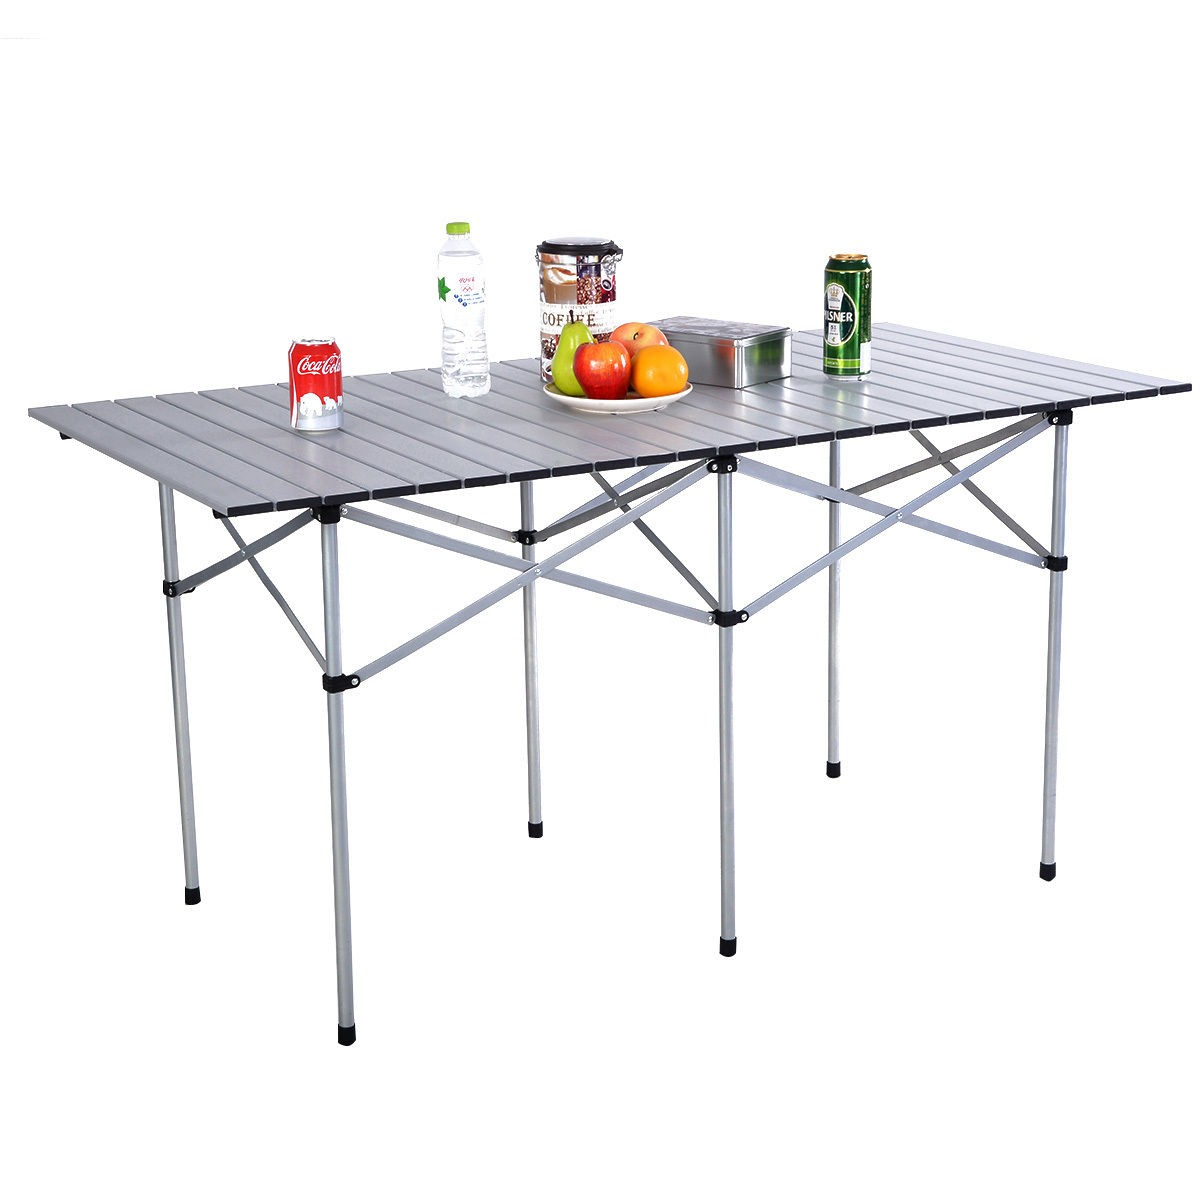 Portable Aluminum Roll Up Table Folding Camping Outdoor Picnic Table Garden  Yard (Large)